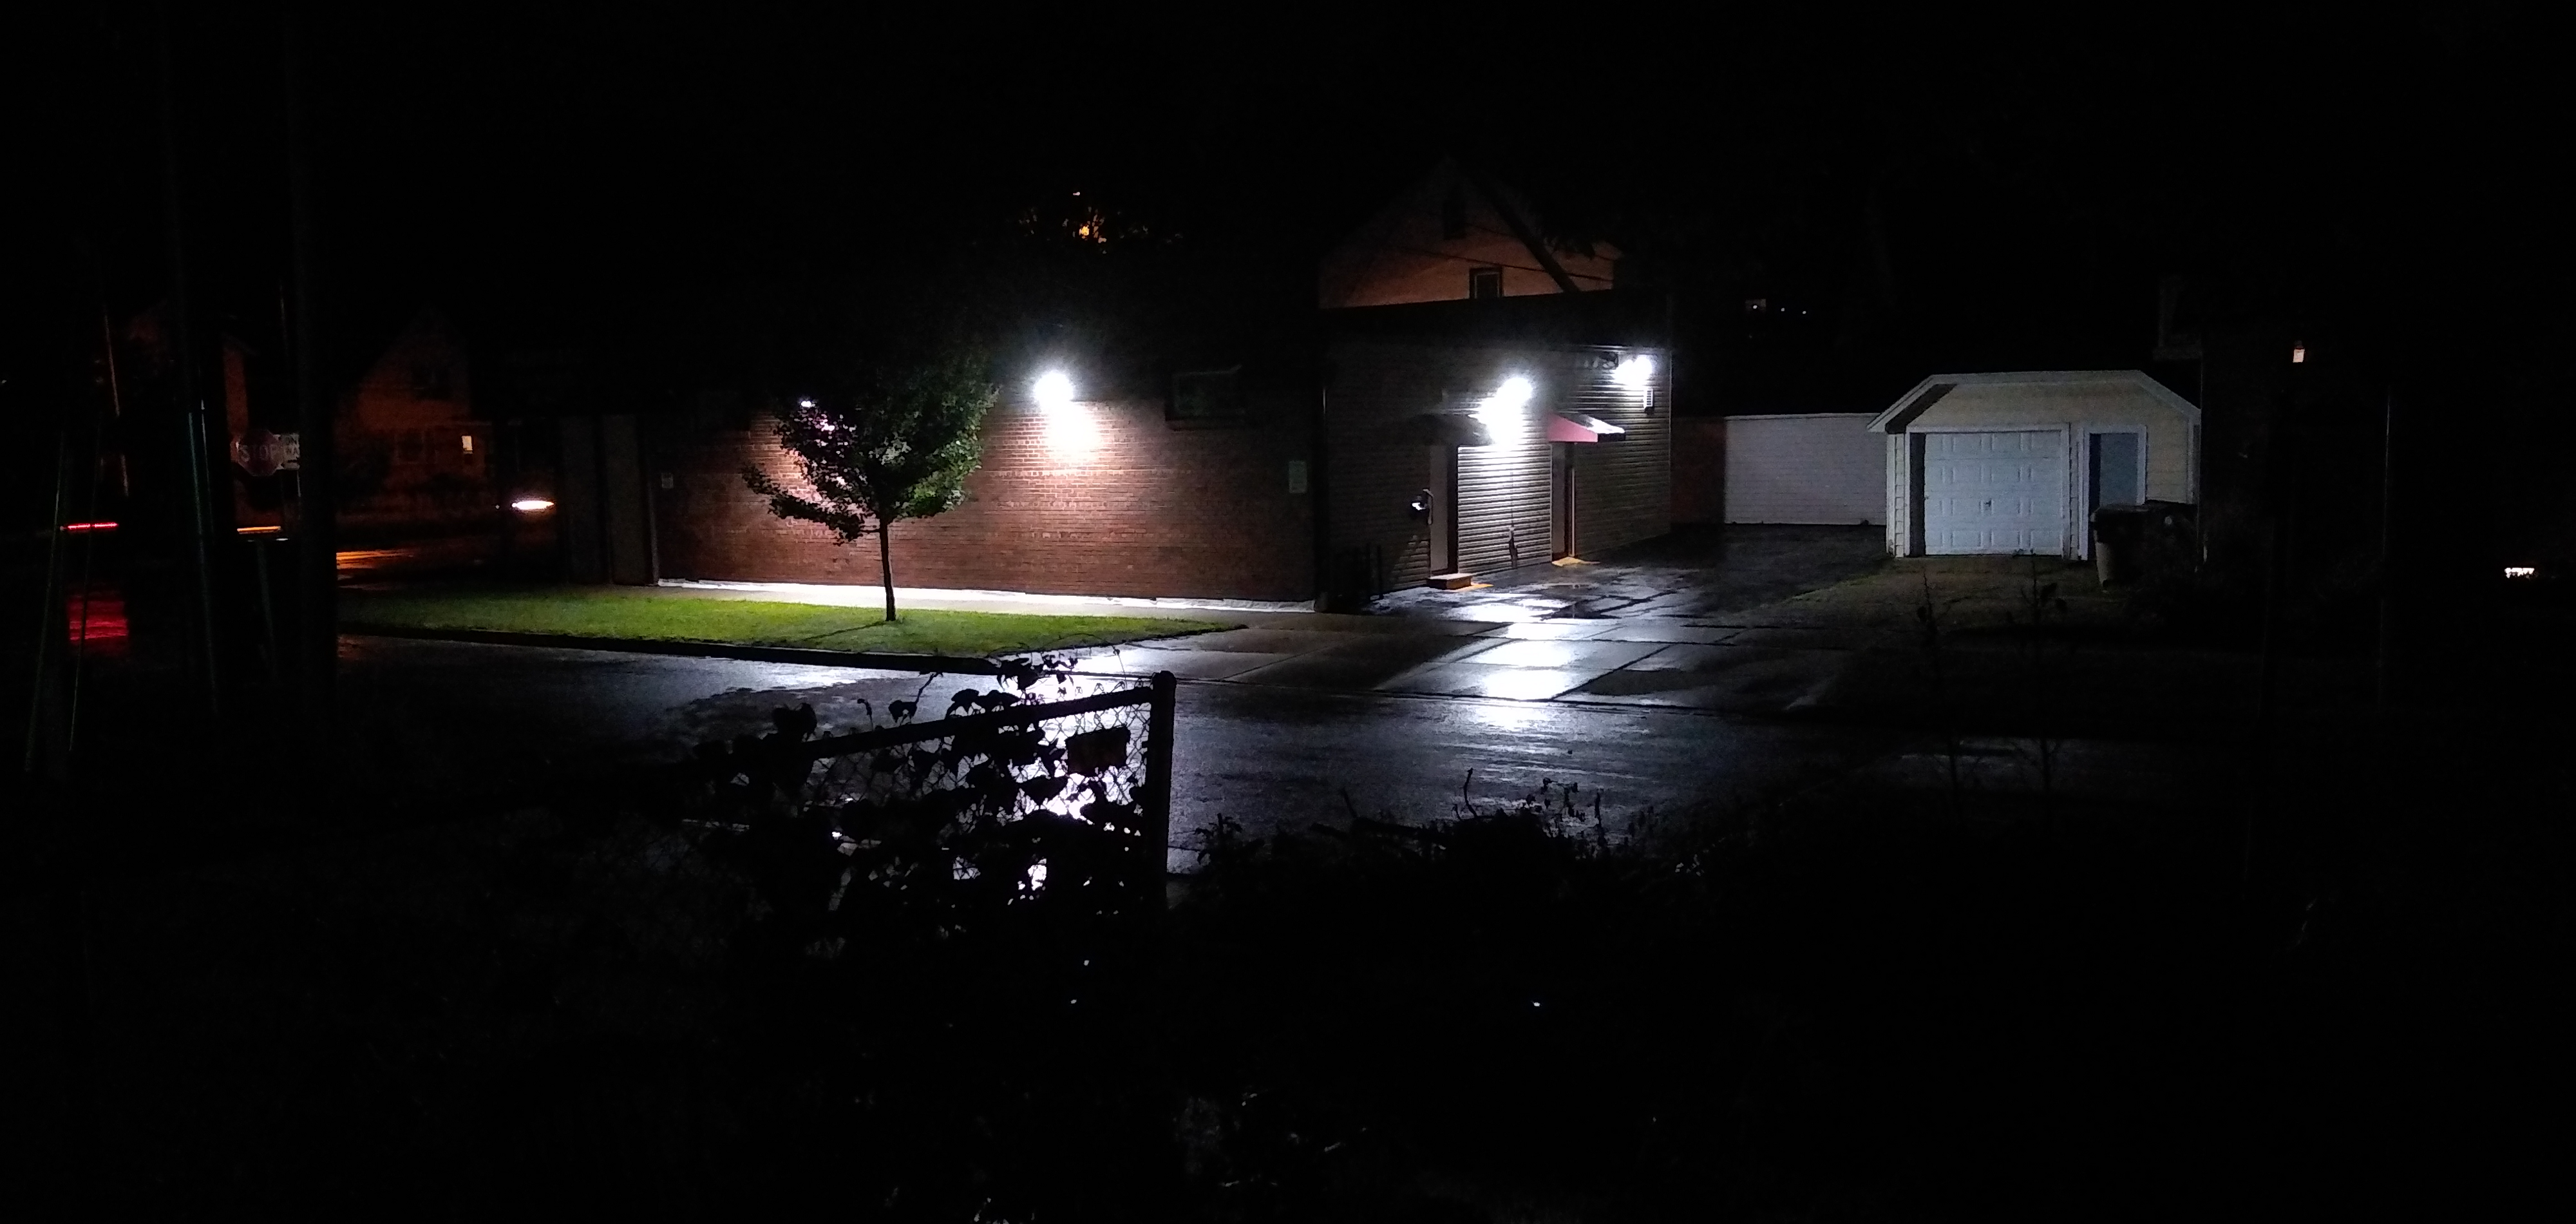 Lighted suburban street with a brick building and a fence at night